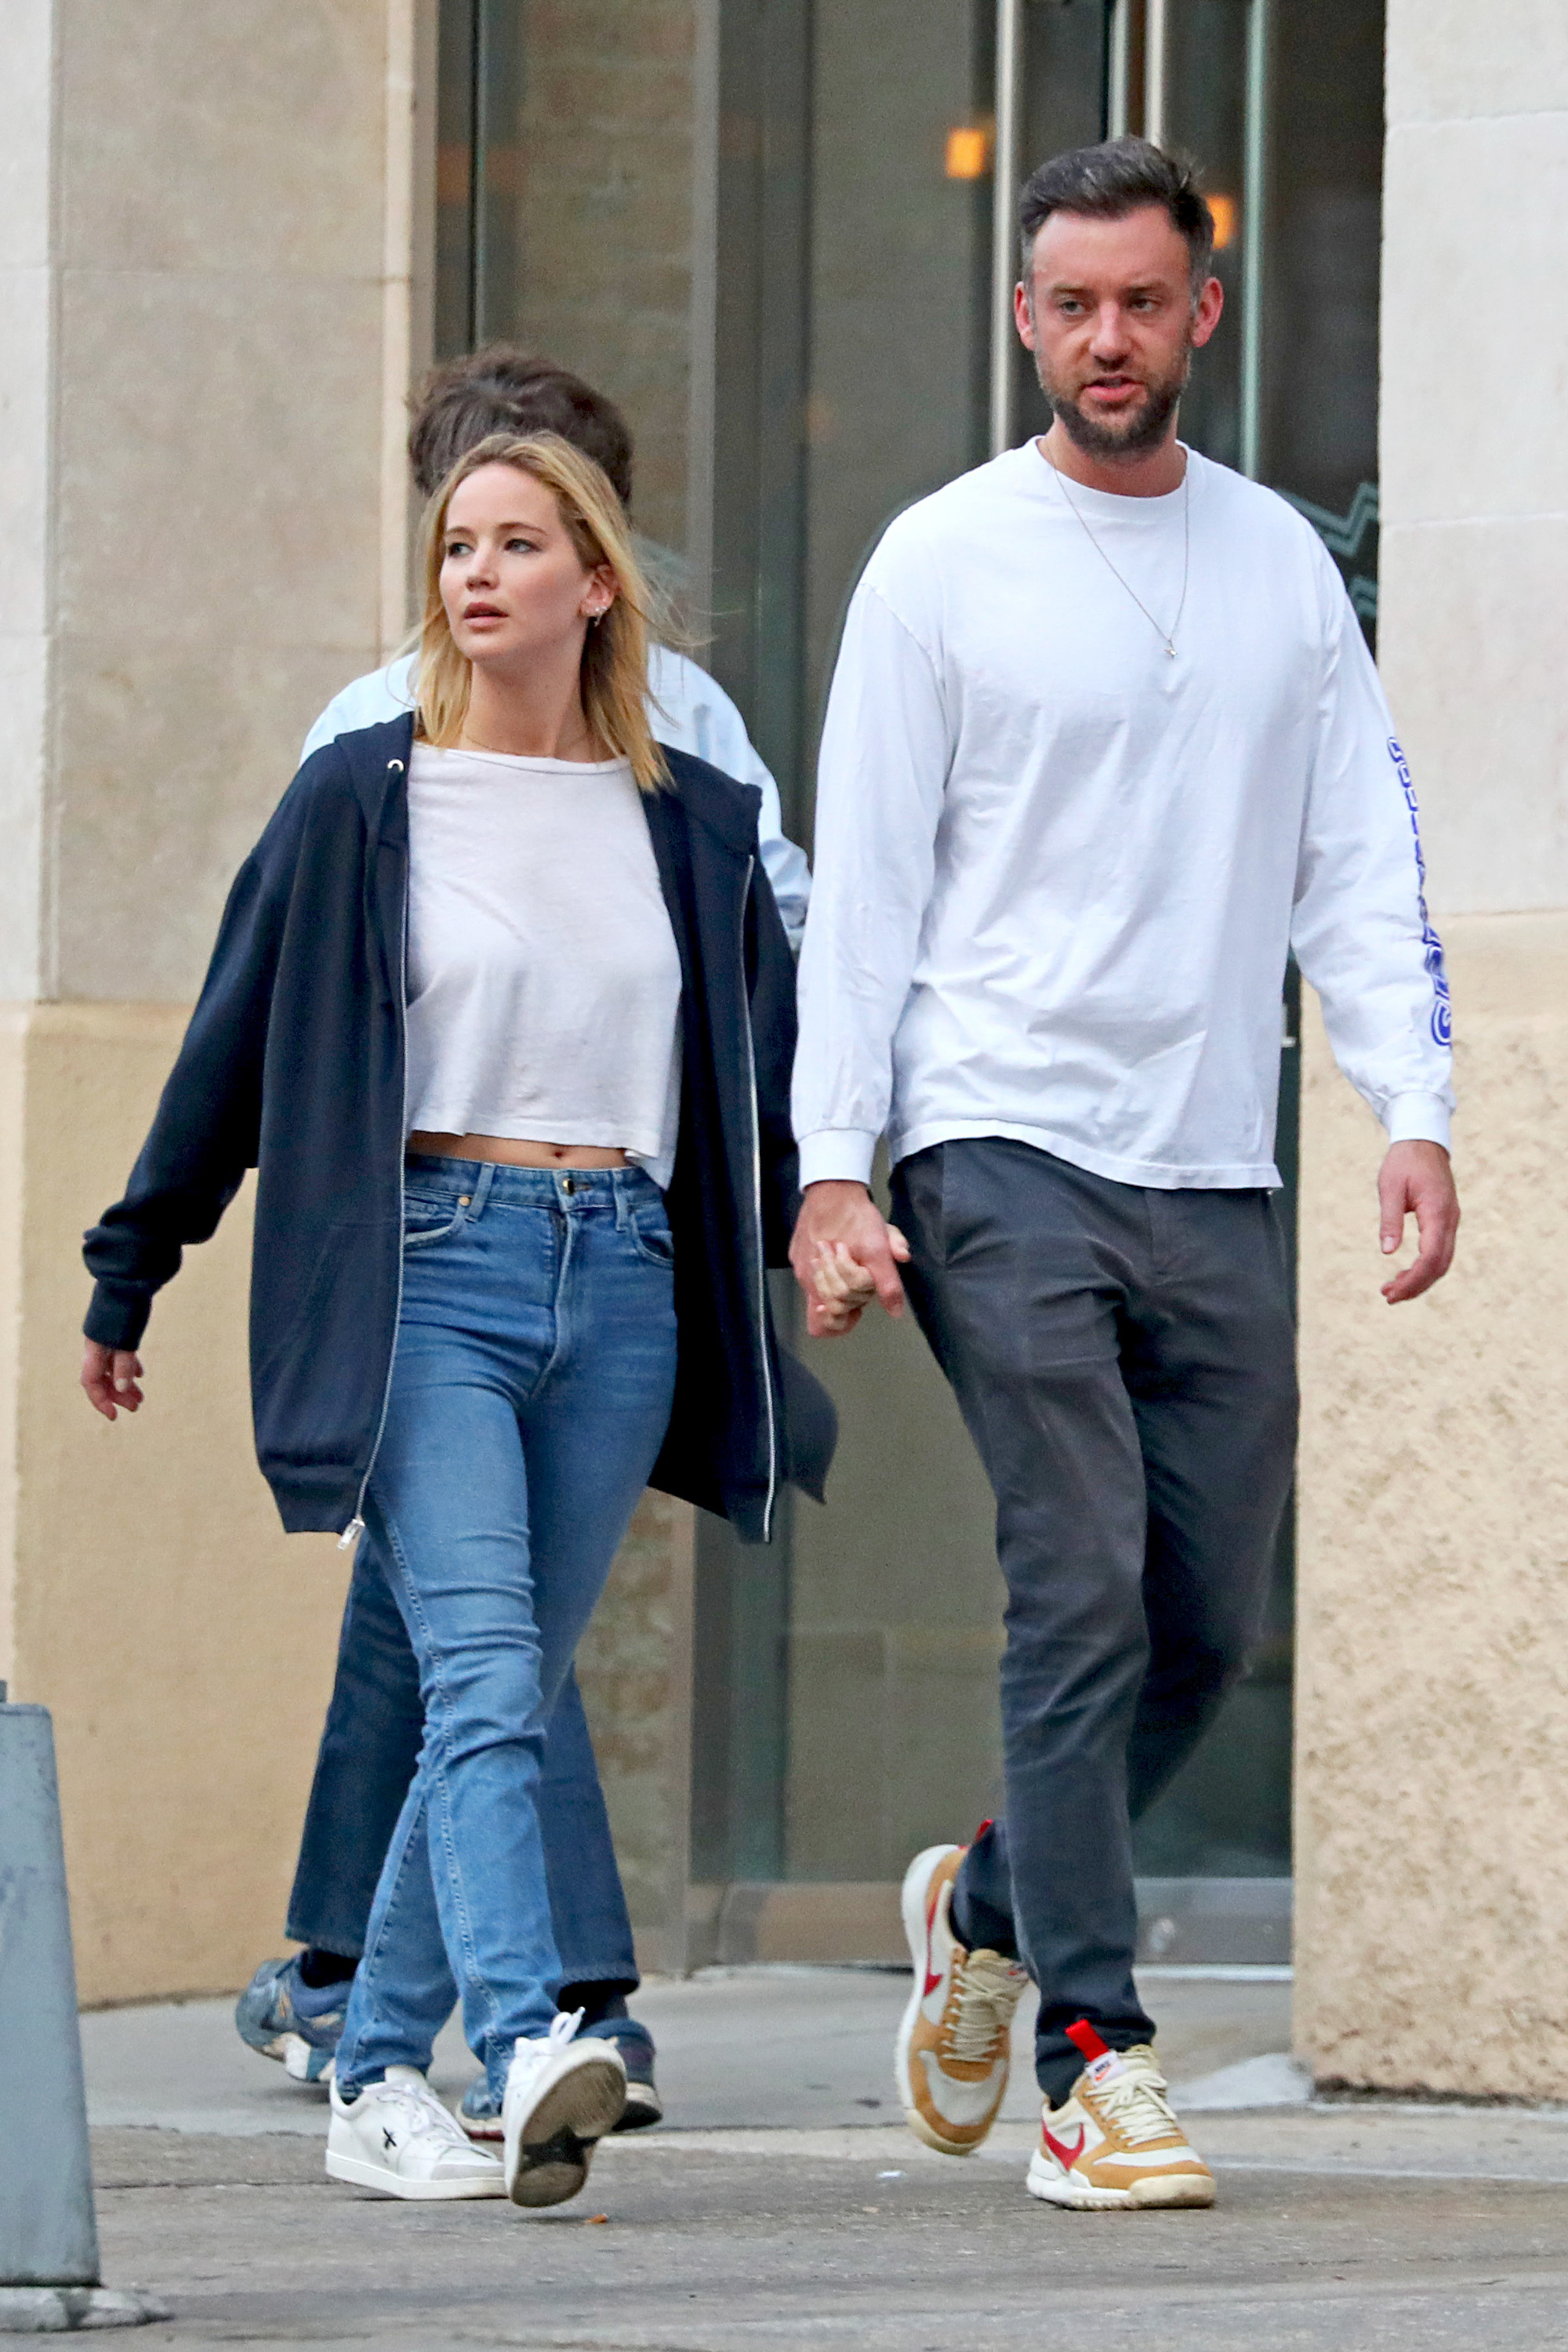 Jennifer Lawrence Engaged Celeb Love News For February 2019 Gallery Wonderwall Com